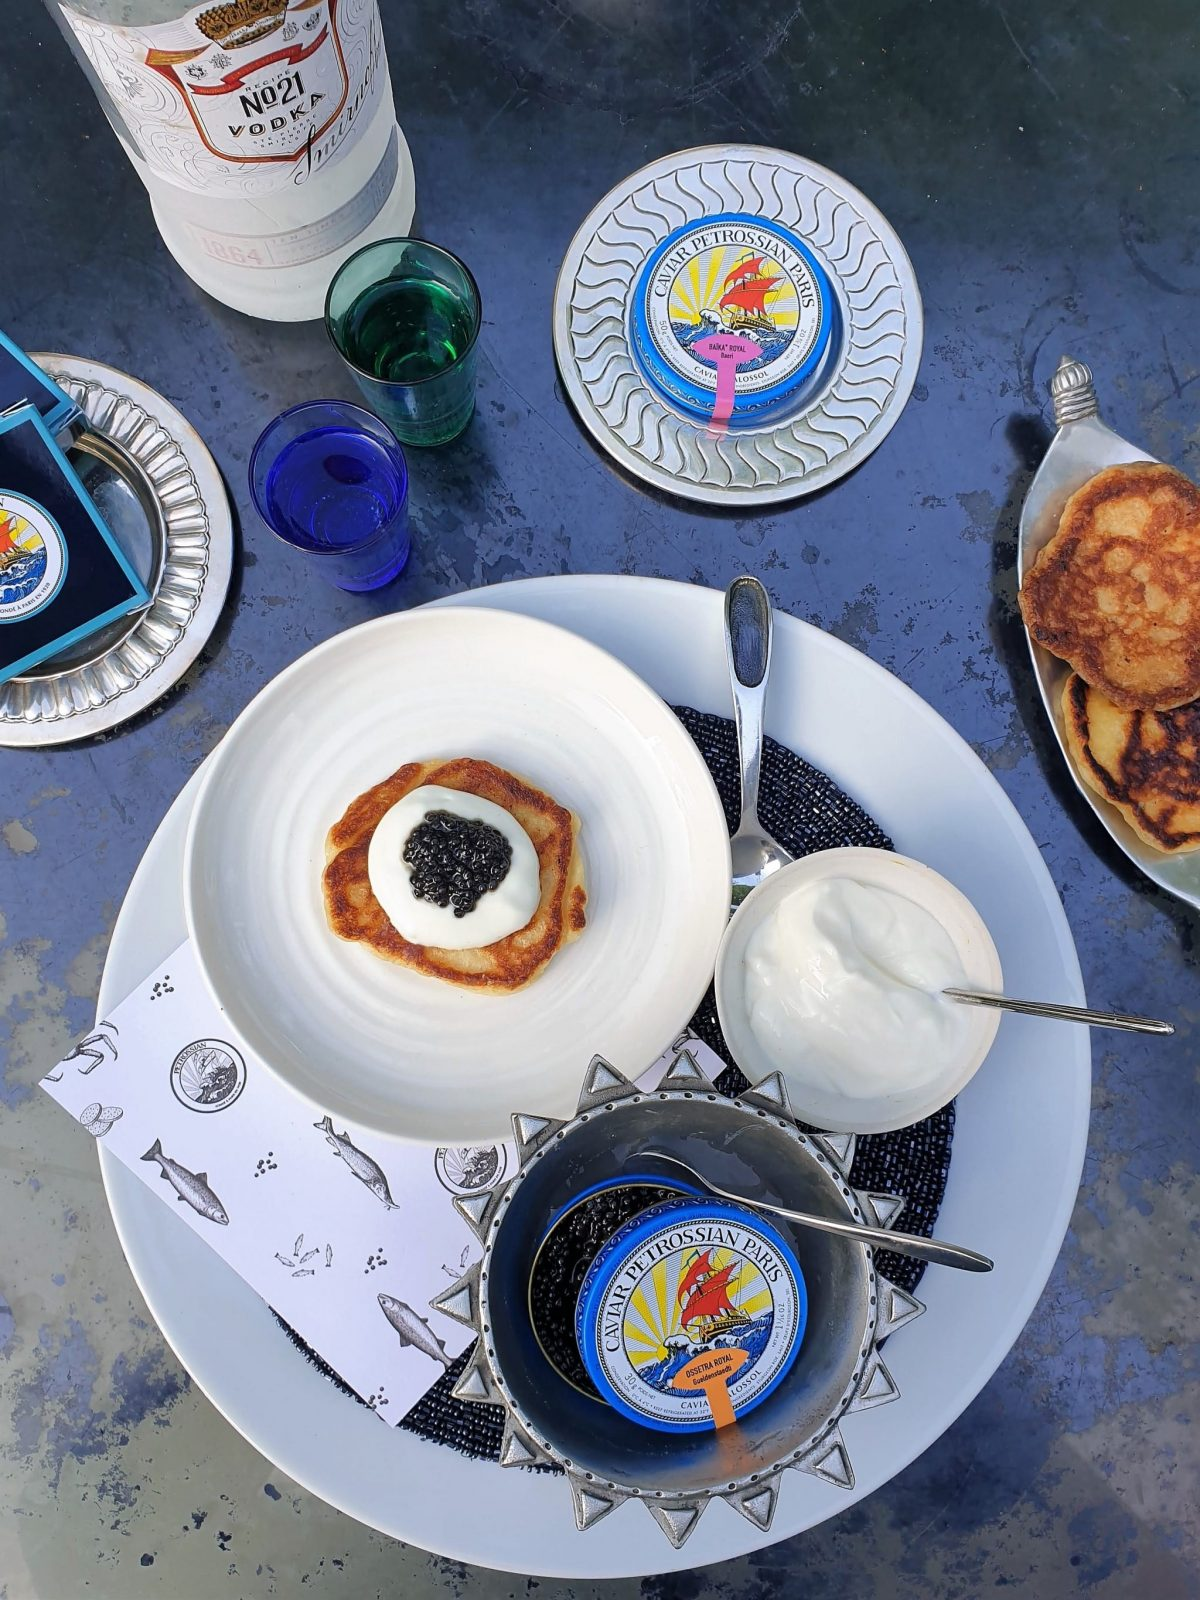 Petrossian caviar with blinis